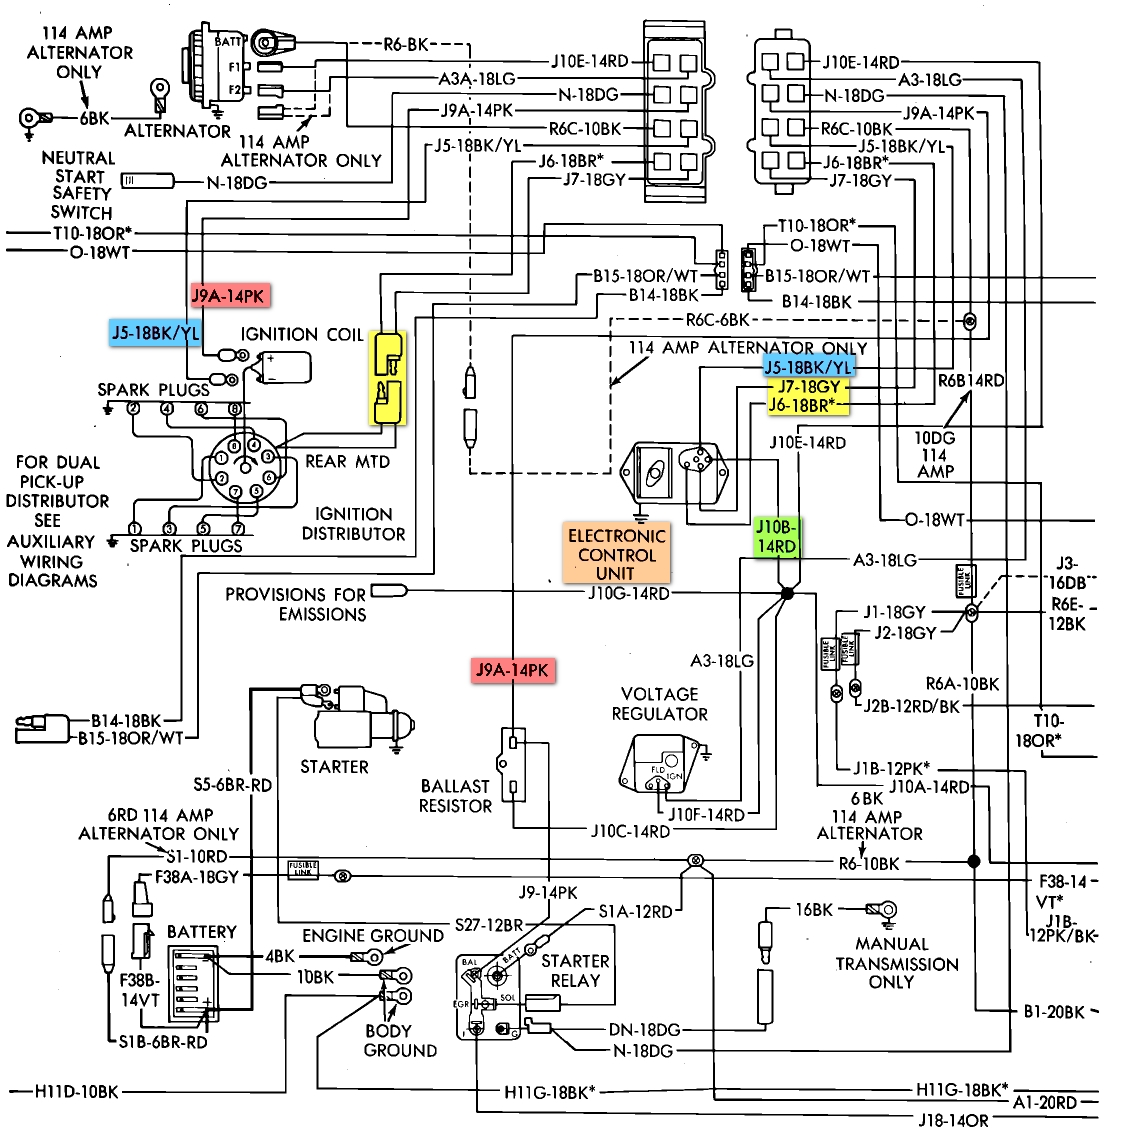 hight resolution of winnebago motorhome wiring diagram free wiring diagram winnebago sightseer wiring diagram winnebago wiring diagram